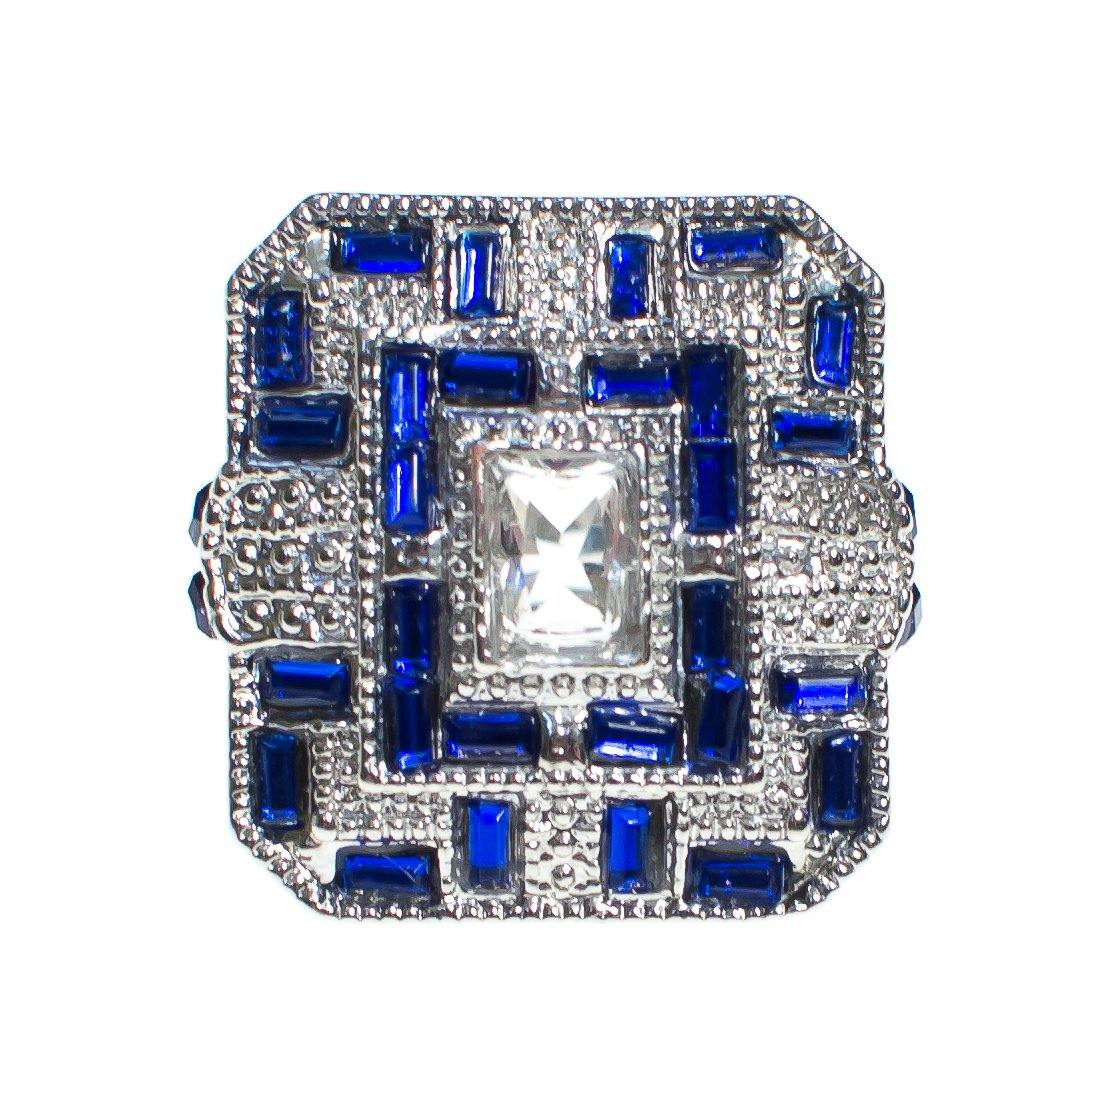 ae5a96d5662 Art Deco Style Sapphire and Crystal Statement Ring - Vintage Meet Modern